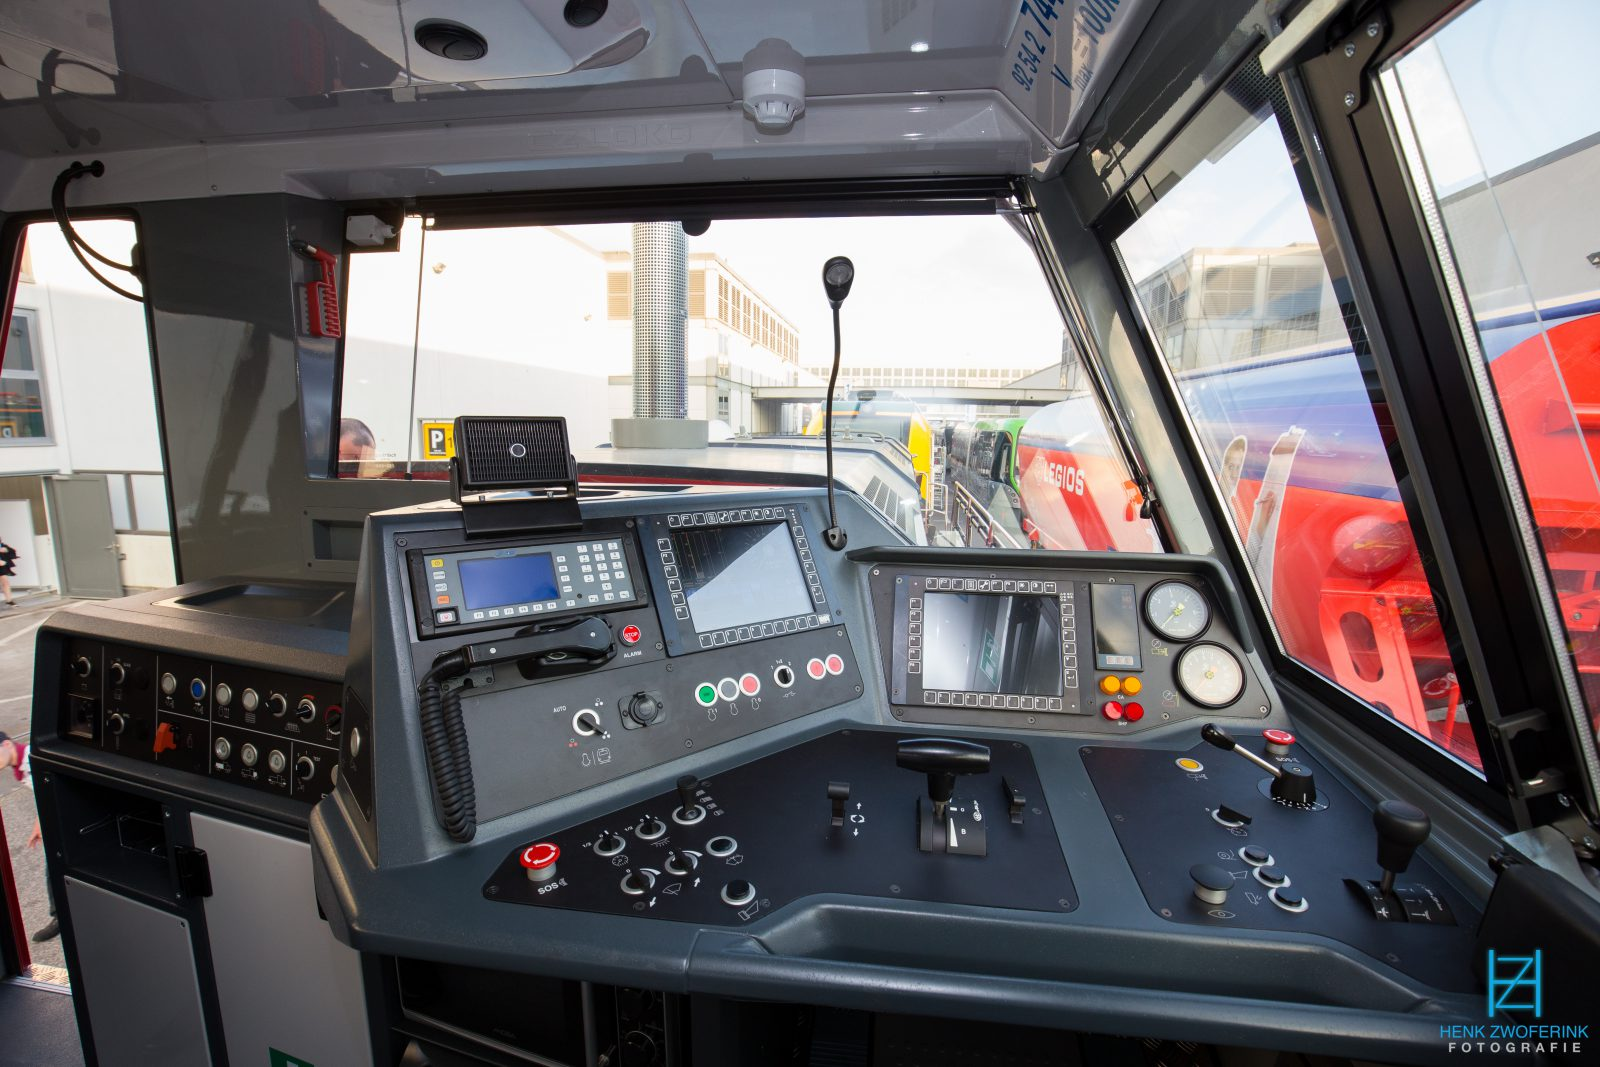 Inside Alstom's H3 for Metrans - Henk Zwoferink